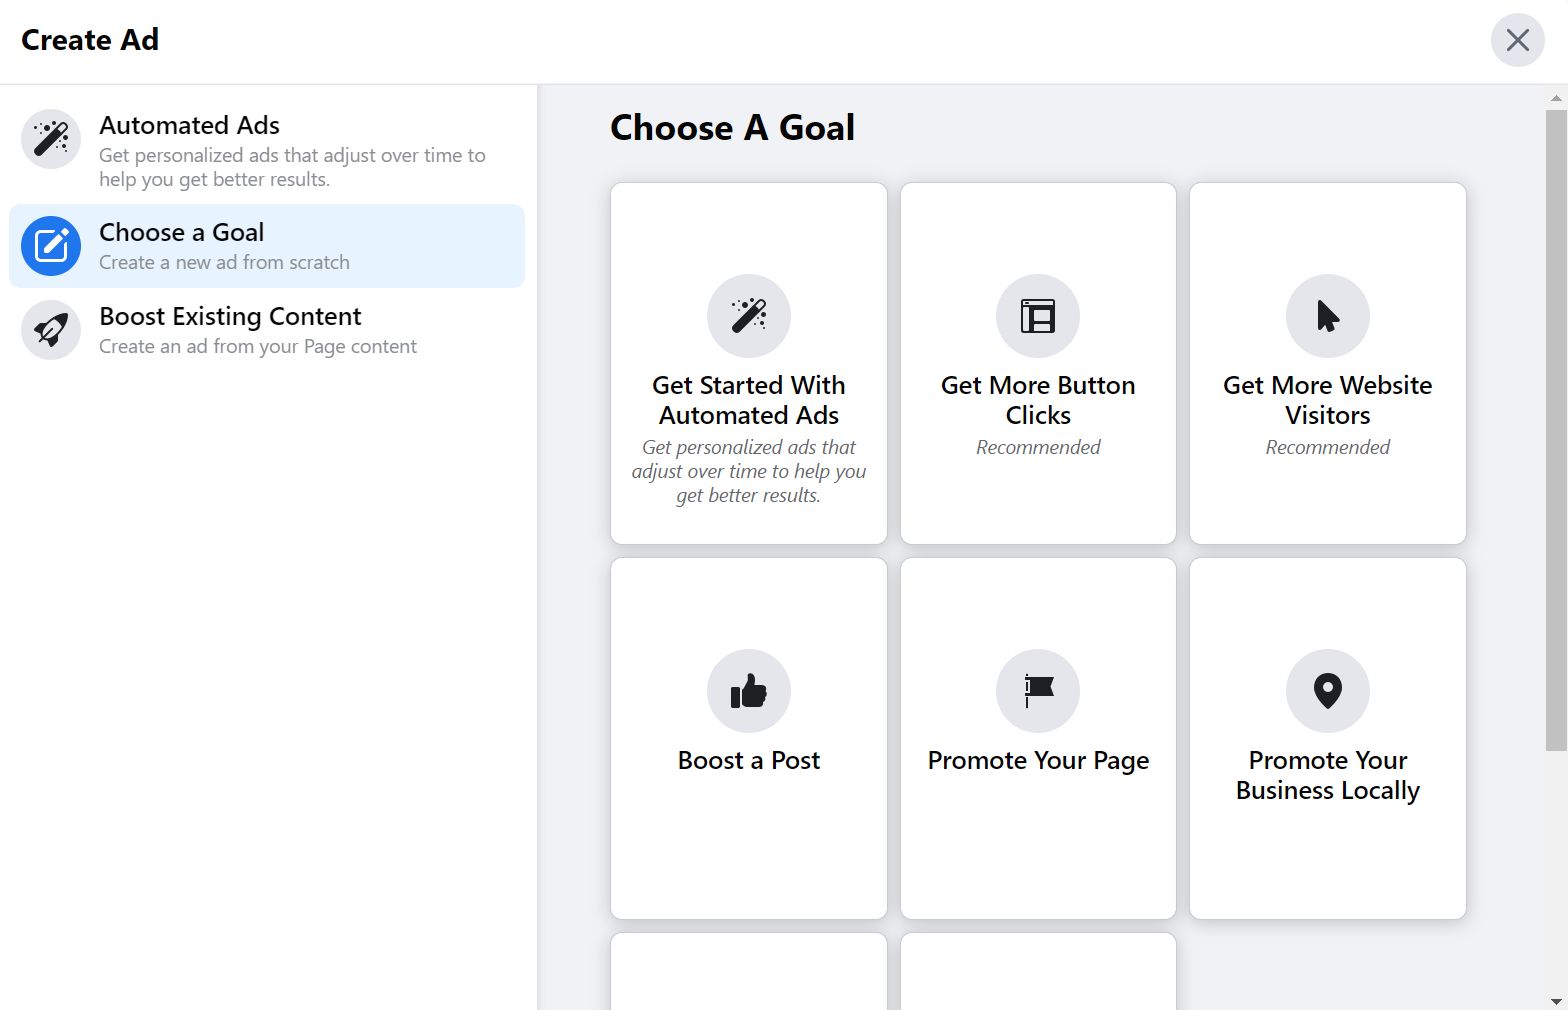 Choosing a goal in Facebook Ads Manager